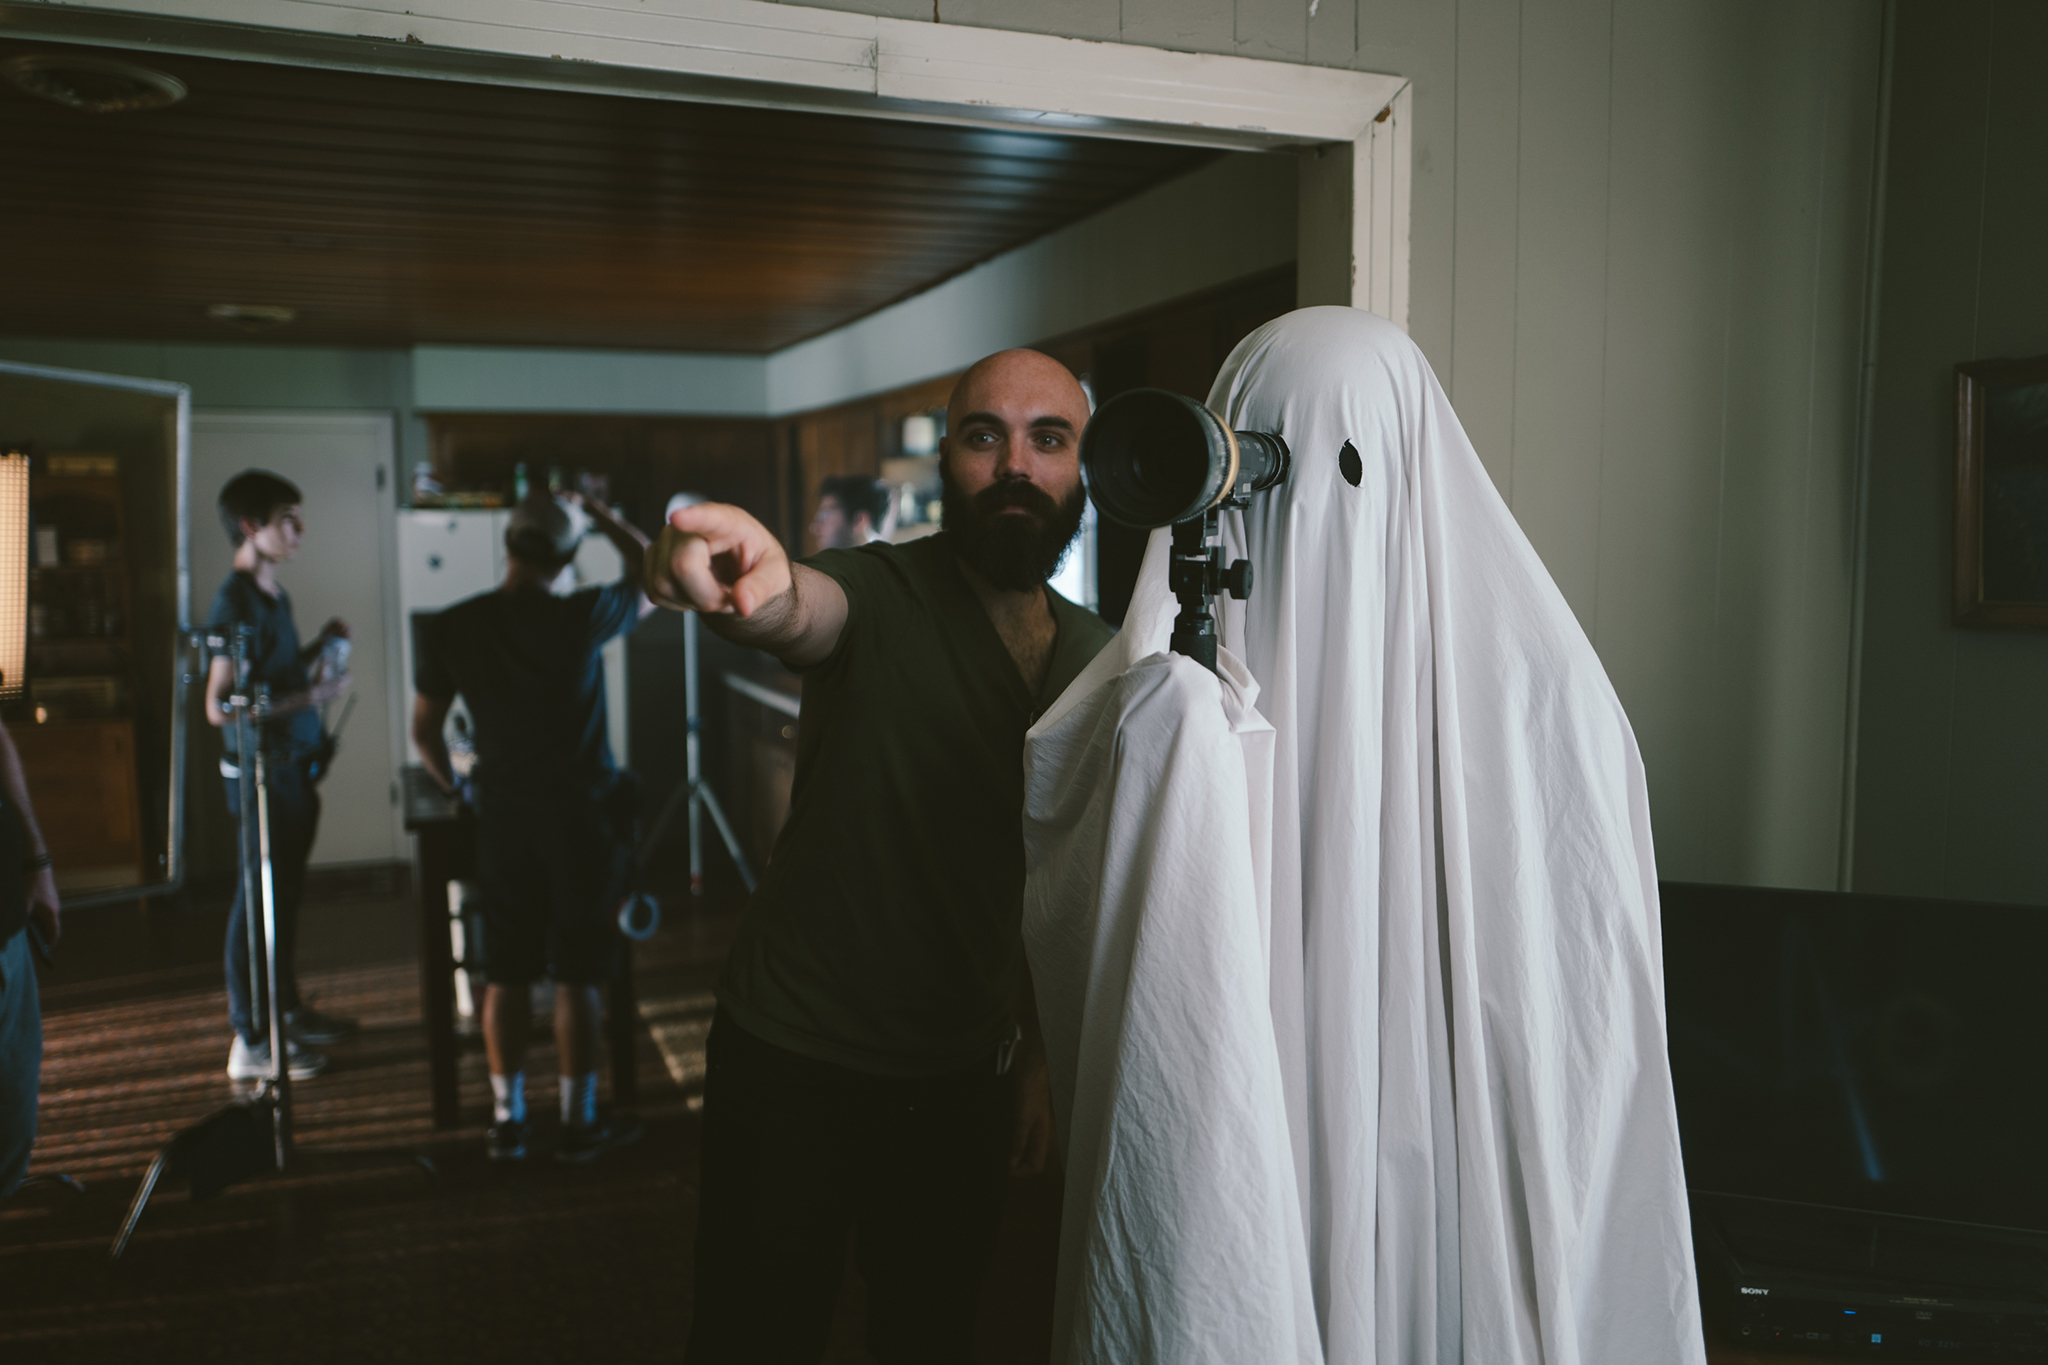 A Ghost Story's director David Lowery on getting into the spirit of his weird supernatural romance